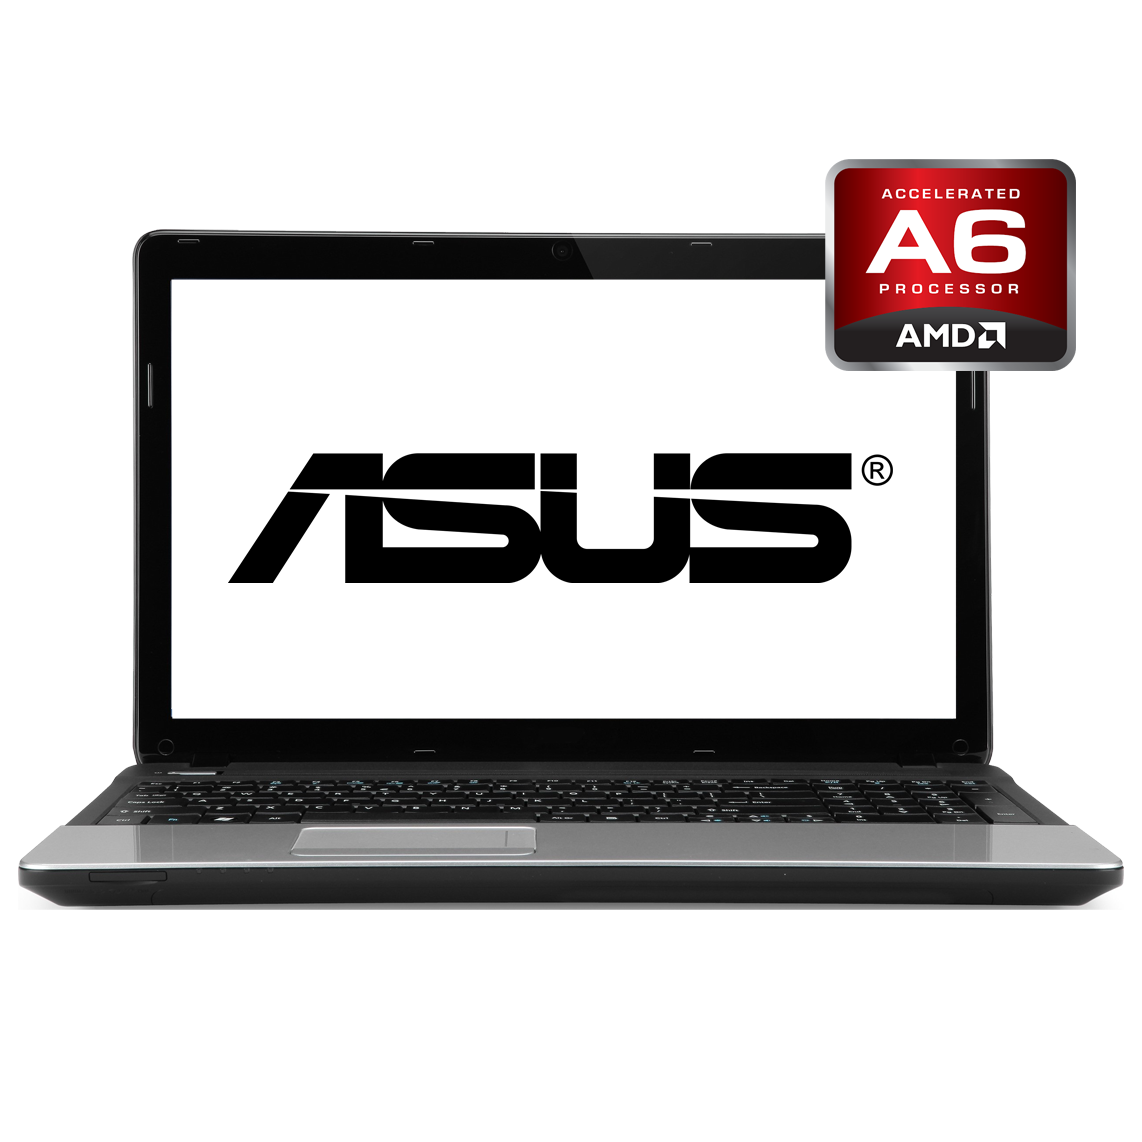 ASUS - 15 inch AMD A6